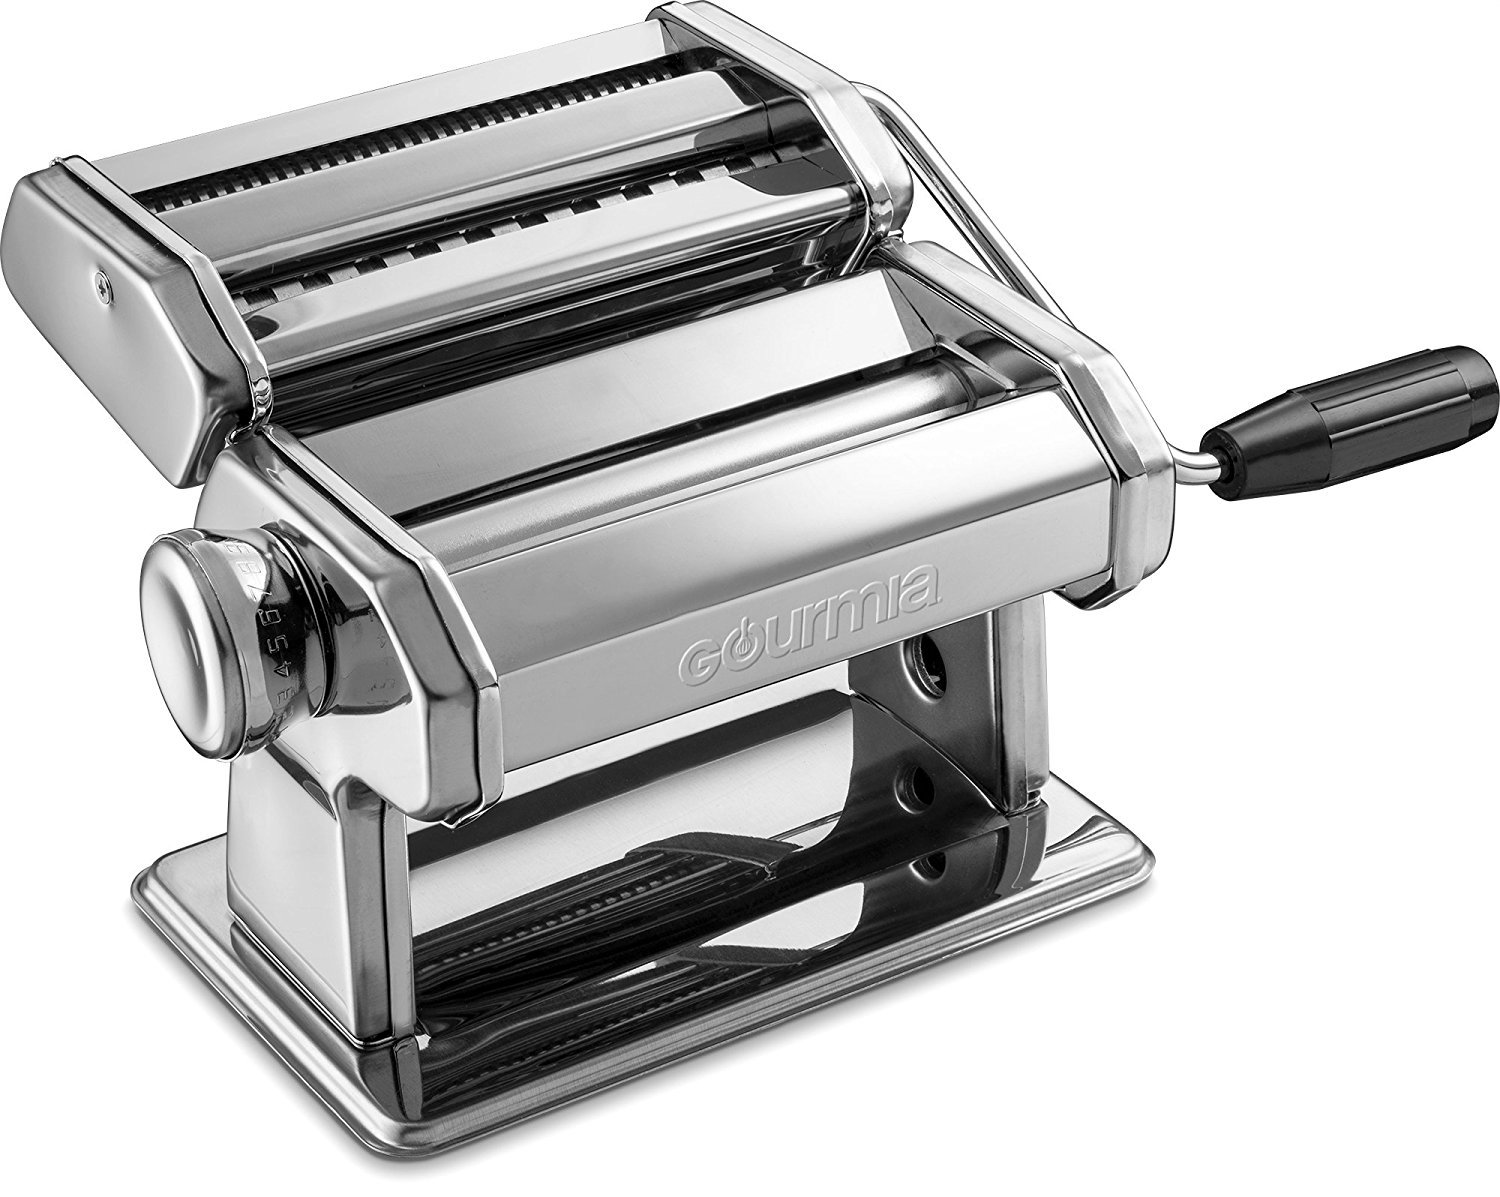 Gourmia GPM9980 - Pasta Maker, Roller and Cutter - Manual Hand Crank - Slices Dough into Spaghetti and Fettuccine - Stainless Steel Surface and Chrome Plated Parts - 150mm